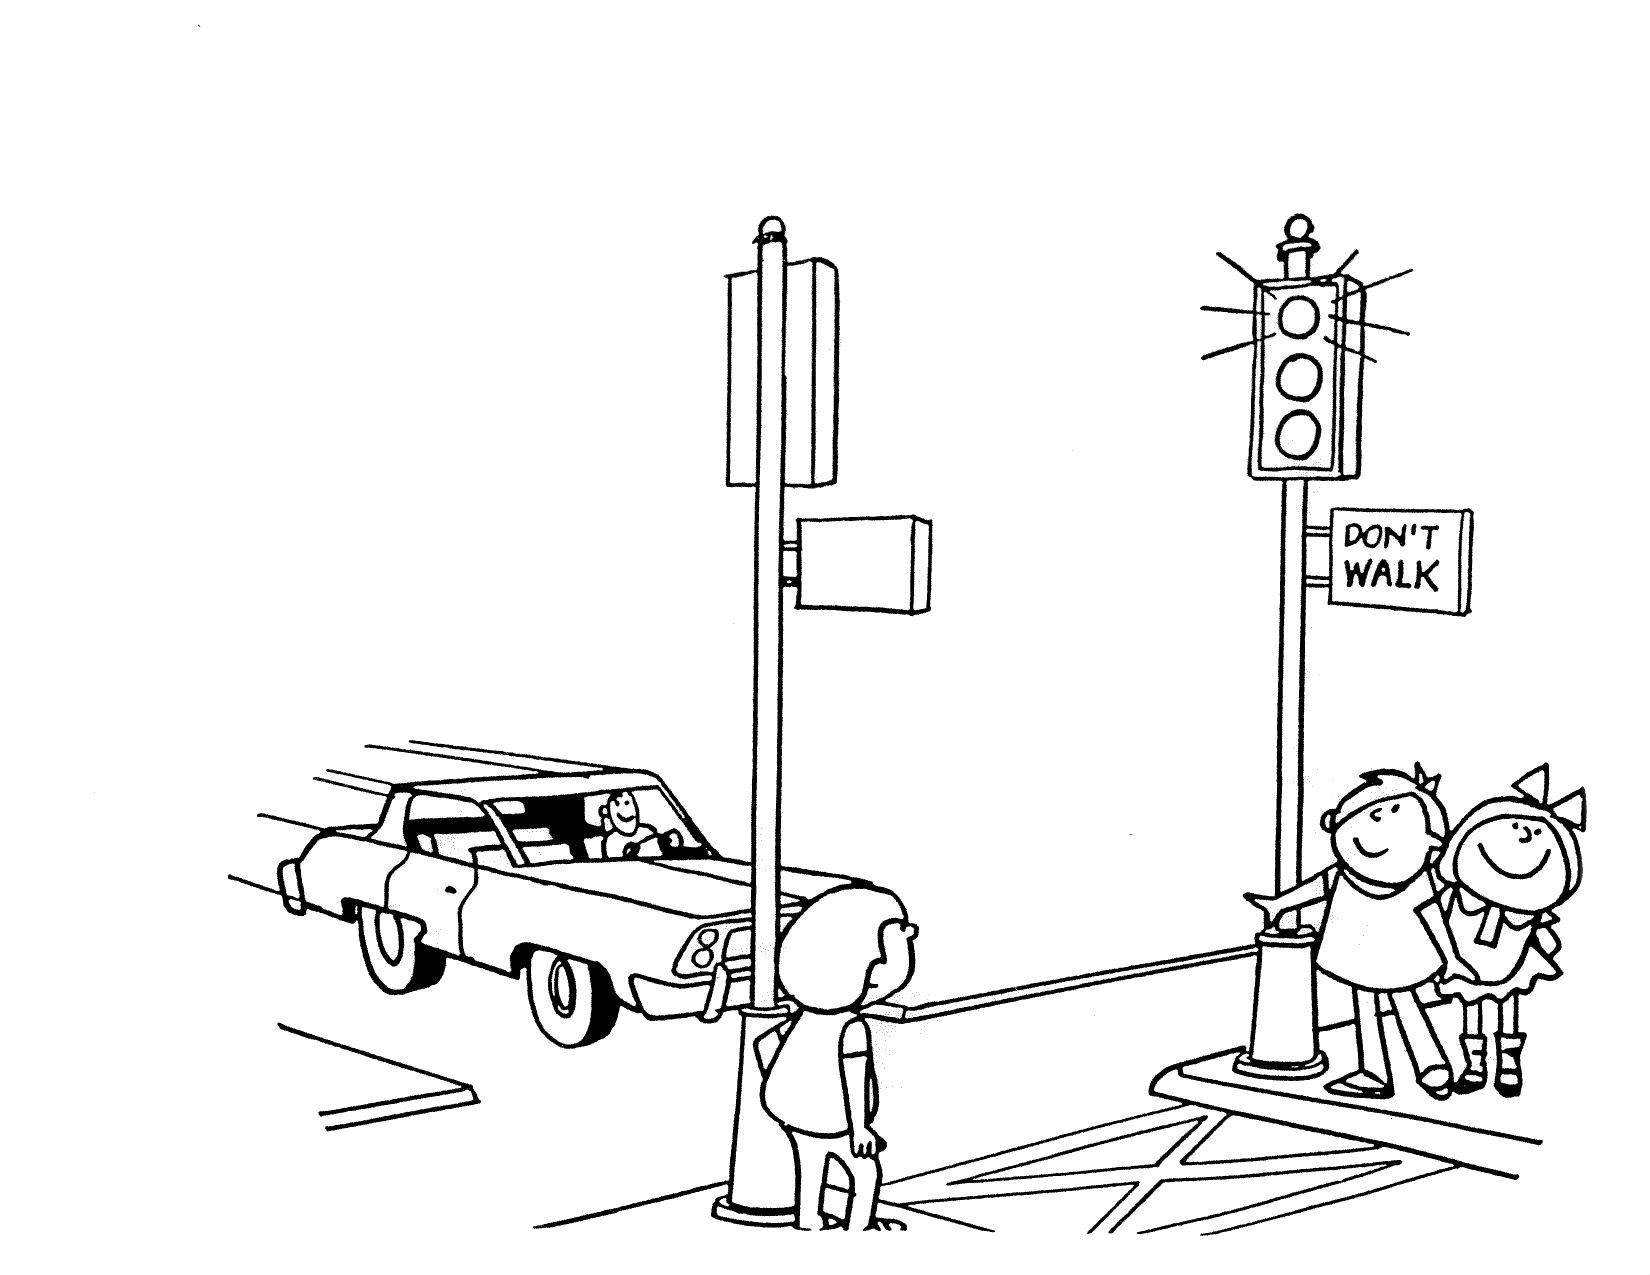 Safety With A View Used Before Crossing Road Coloring Pages For Kids E4t Printable Health Safety Coloring Pages For Kids